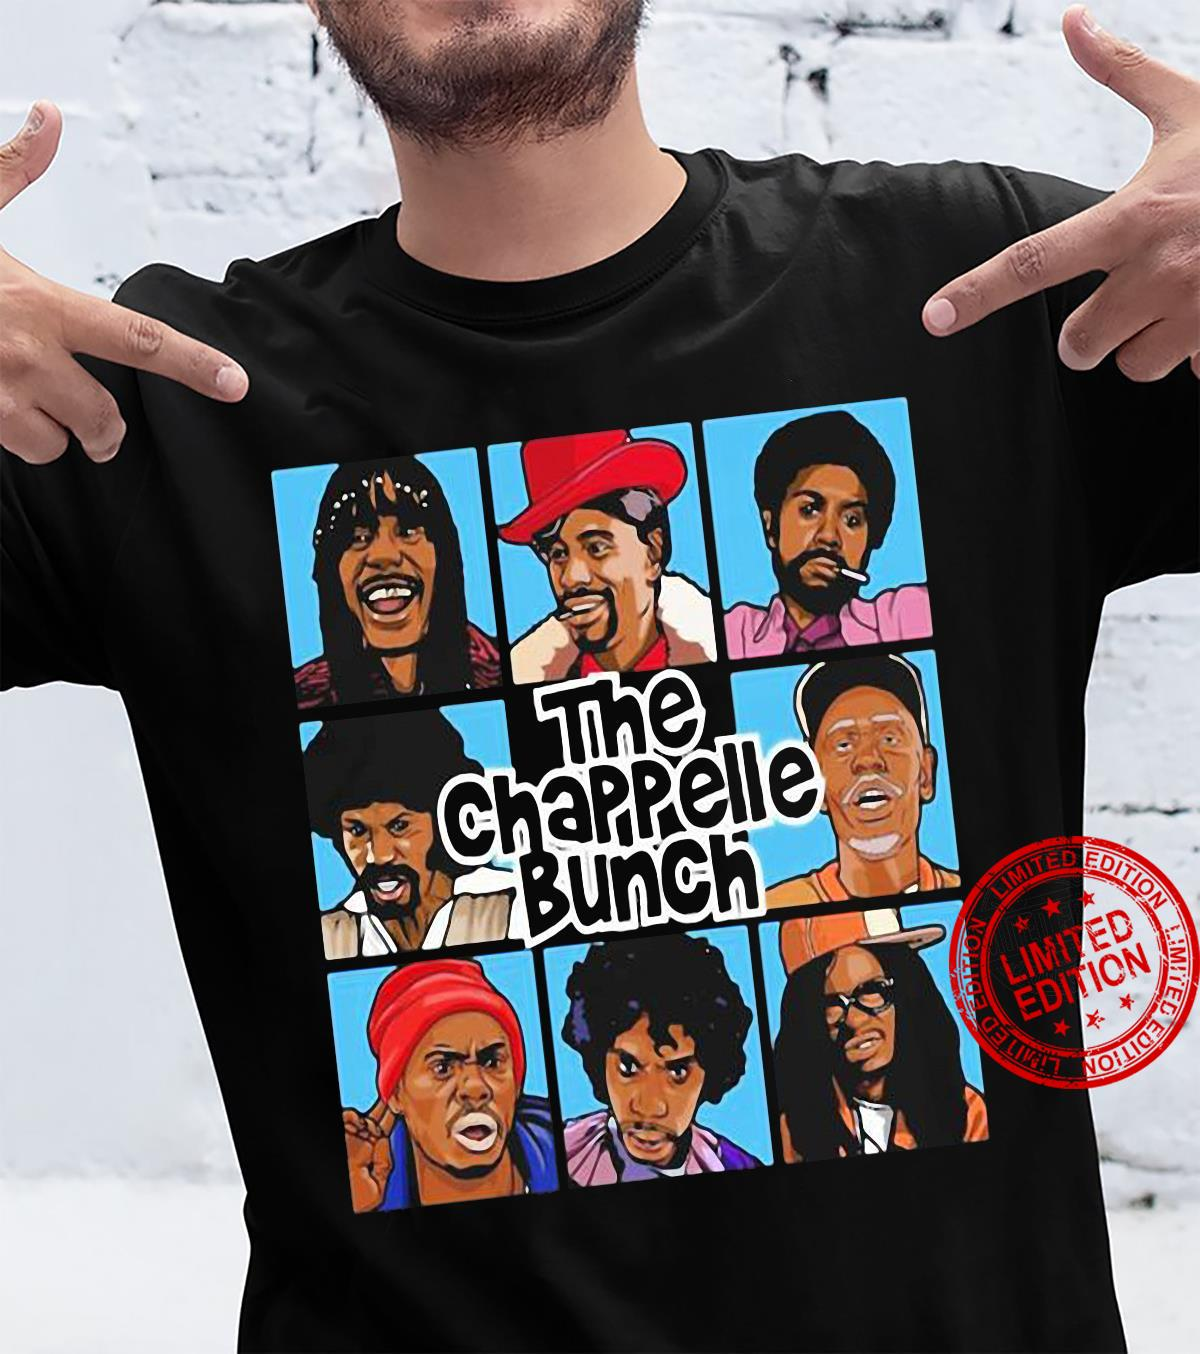 The chappelle bunch shirt